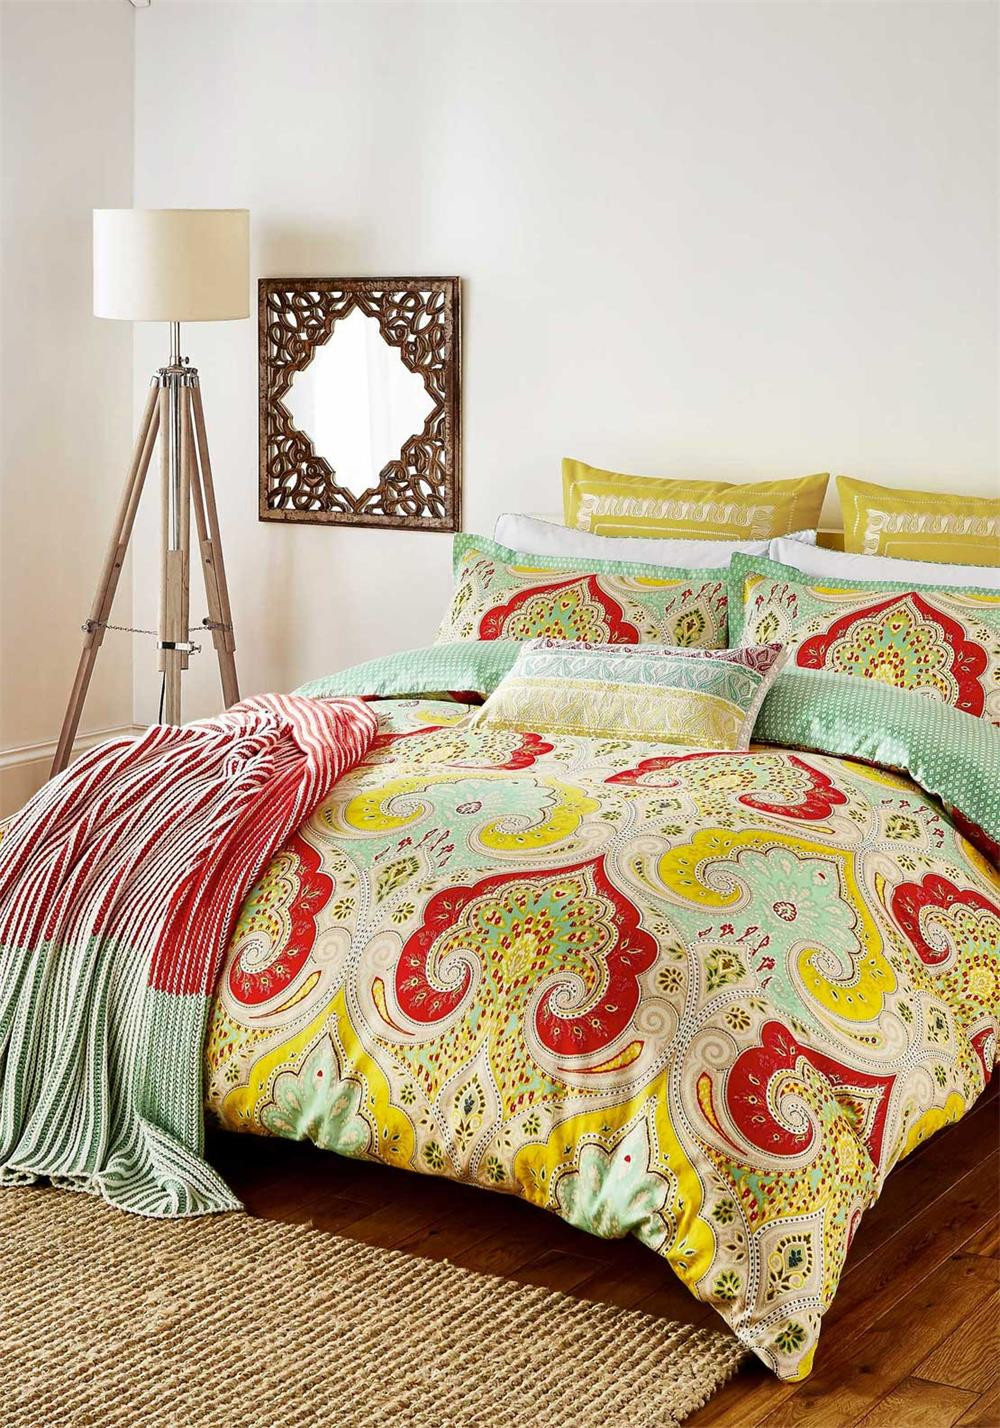 Echo New York Jaipur Duvet Cover, Multi